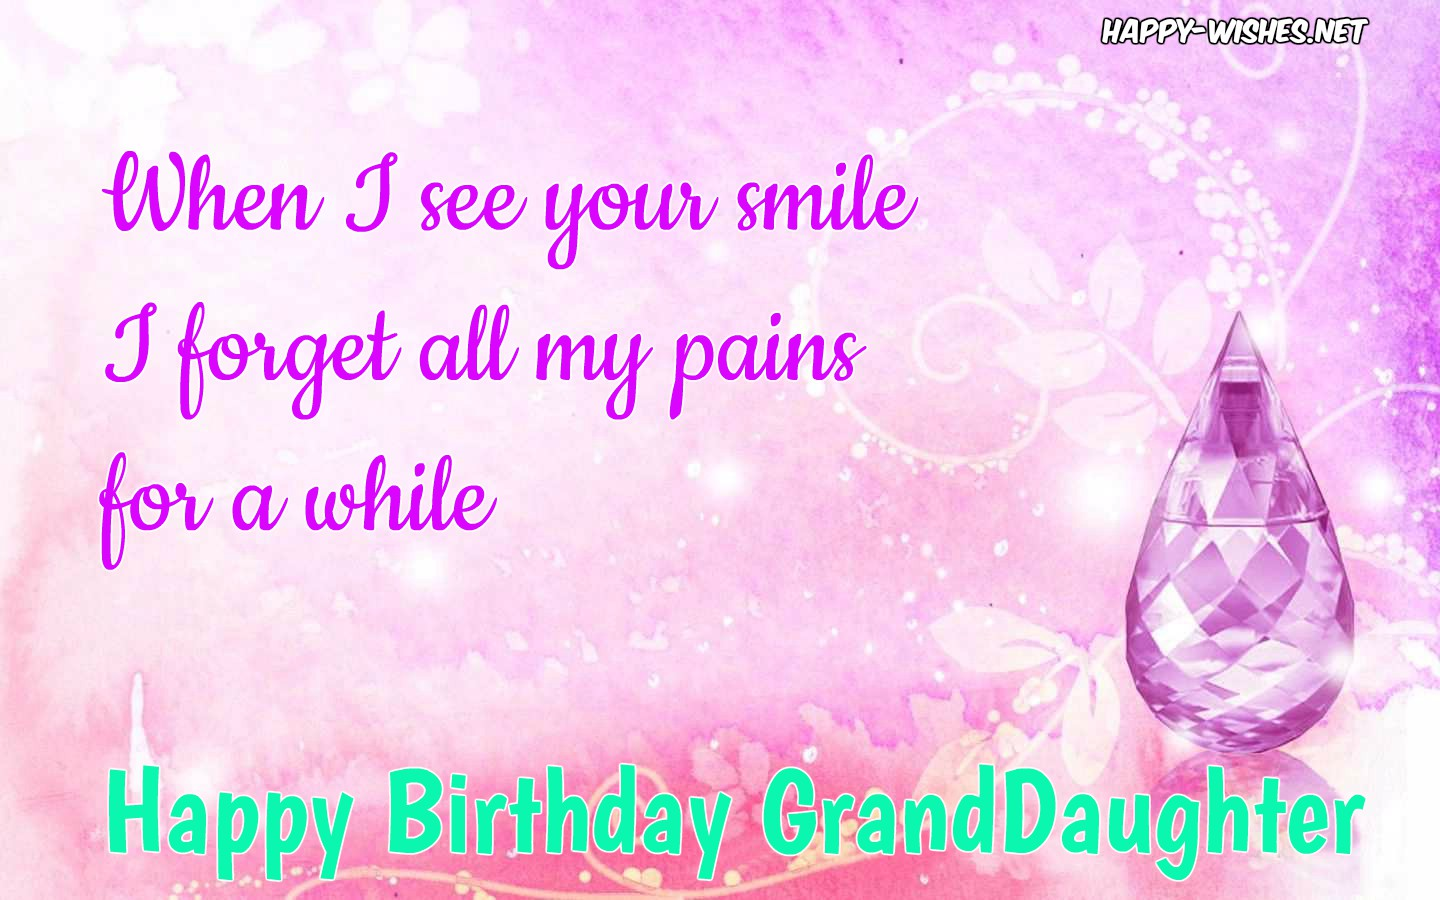 happy birthday granddaughter quotes ; 2HappybirthdaywishesforGranddaughter-compressed